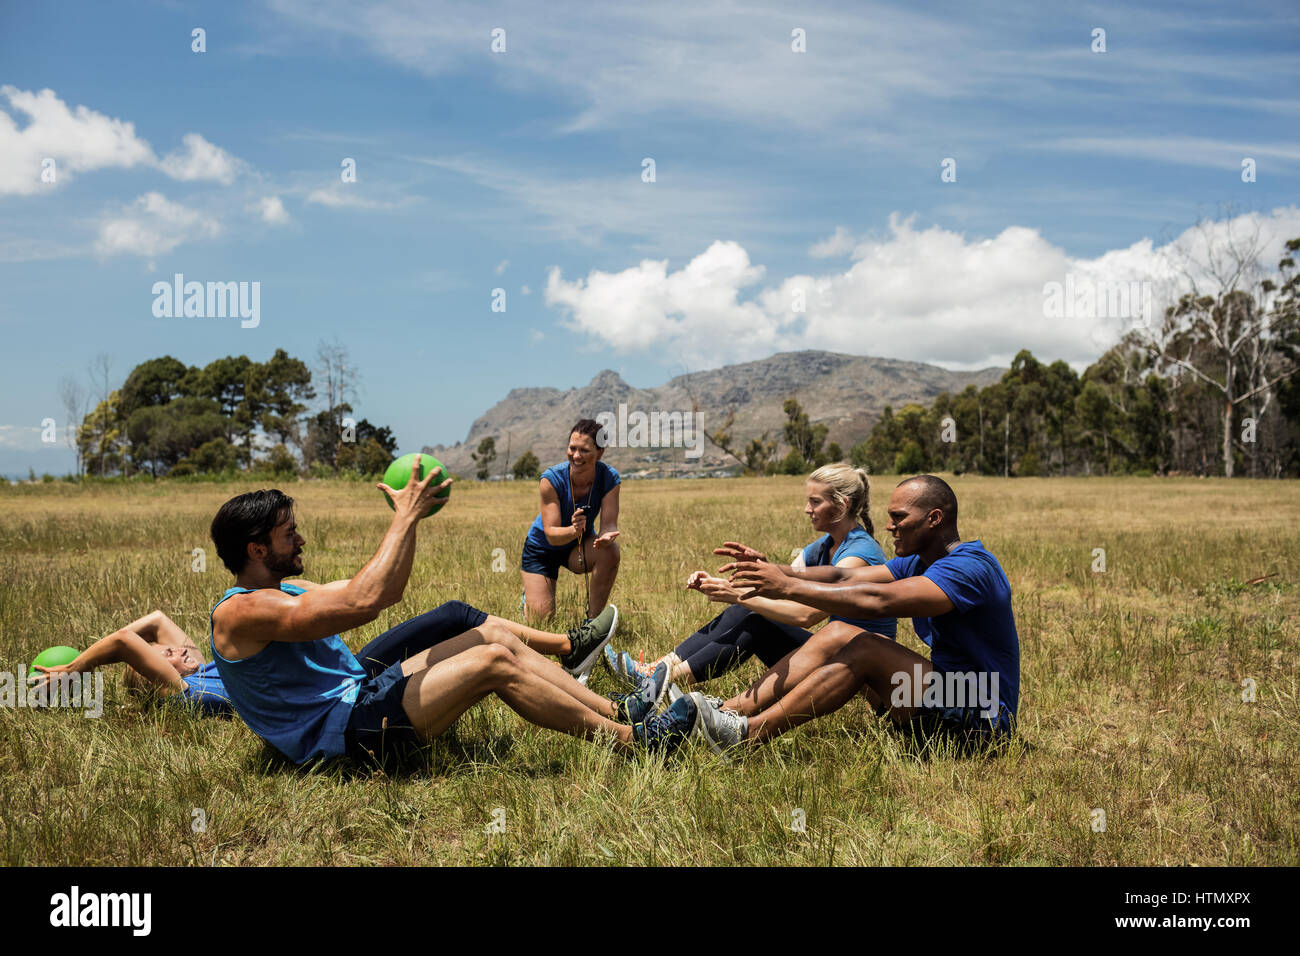 Fit people performing core exercise in bootcamp - Stock Image